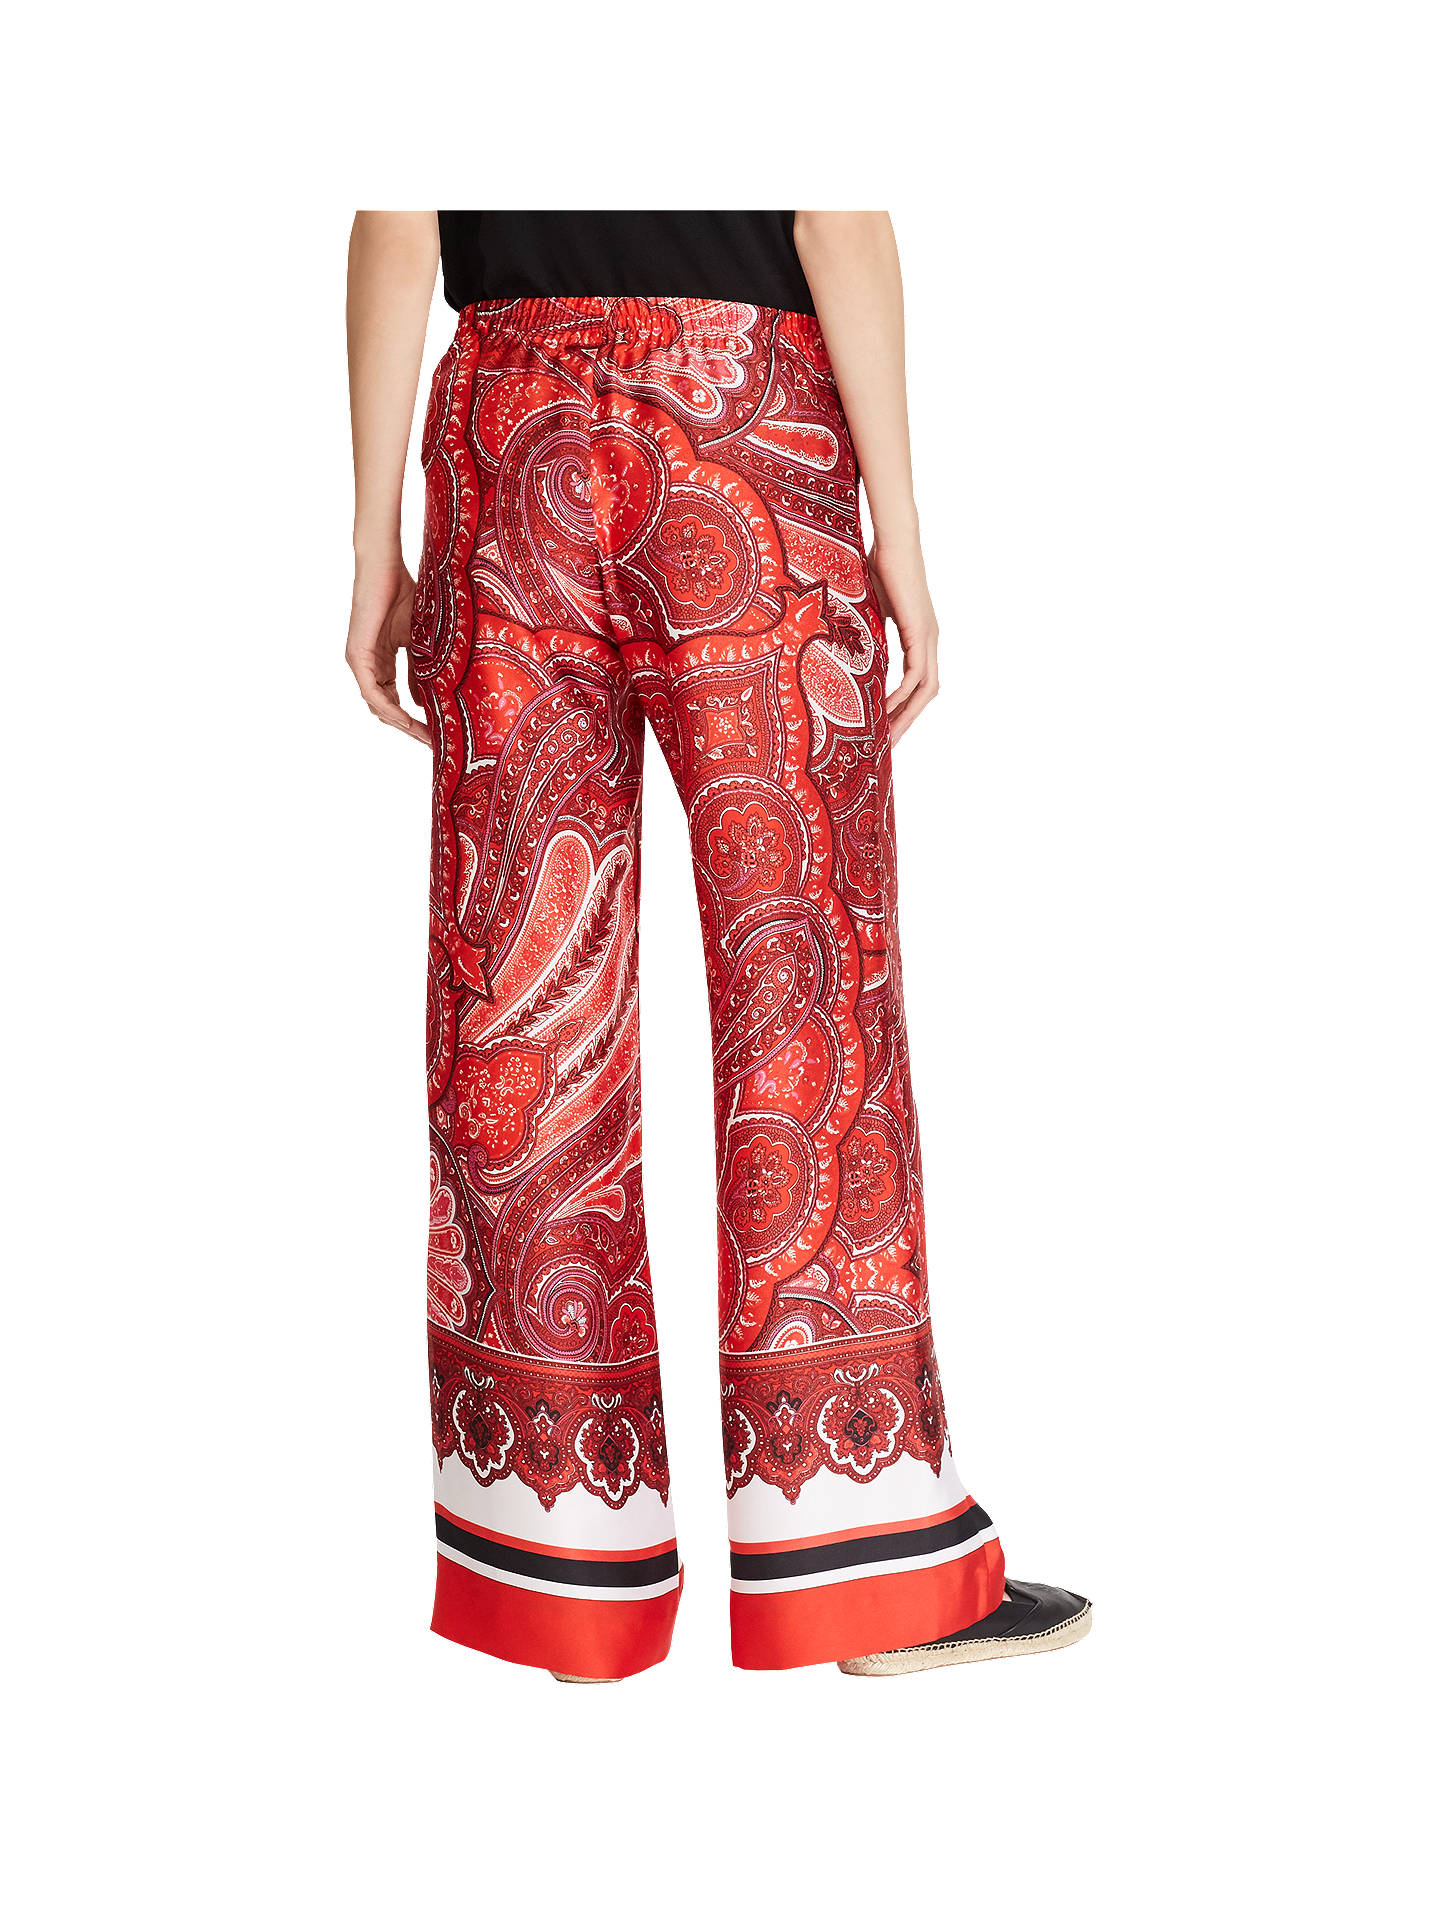 BuyPolo Ralph Lauren Ziakash Wide Leg Paisley Trousers, Red/Multi, XS Online at johnlewis.com